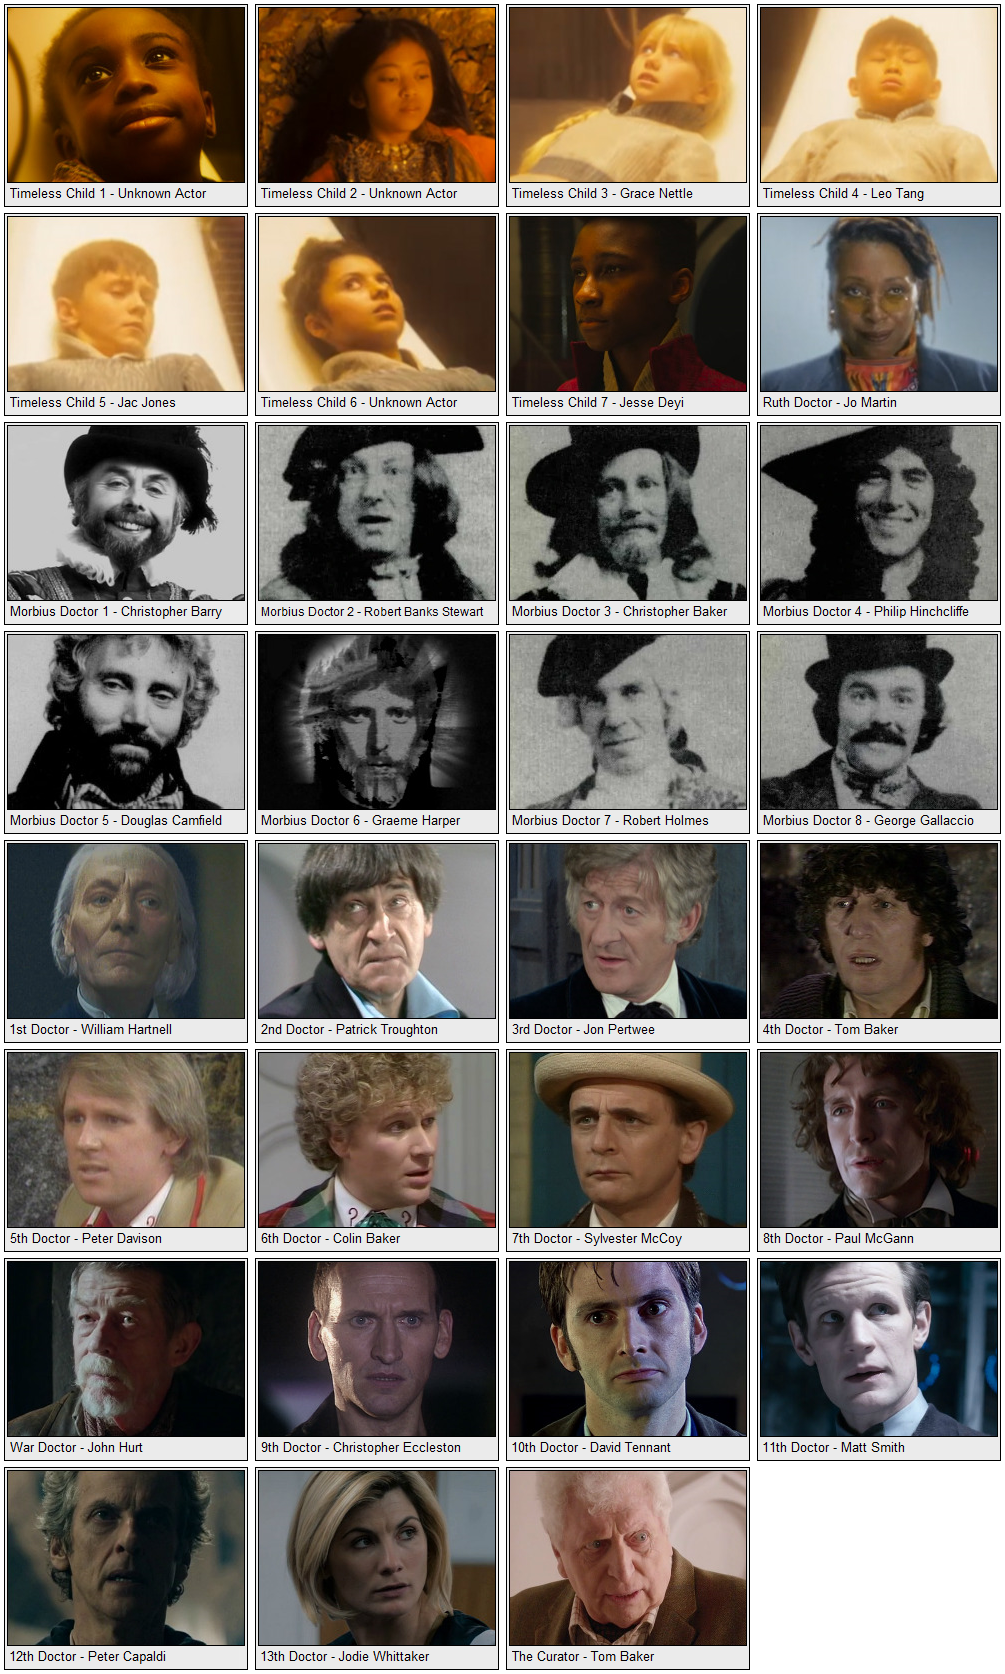 Incarnations of the Doctor Guide